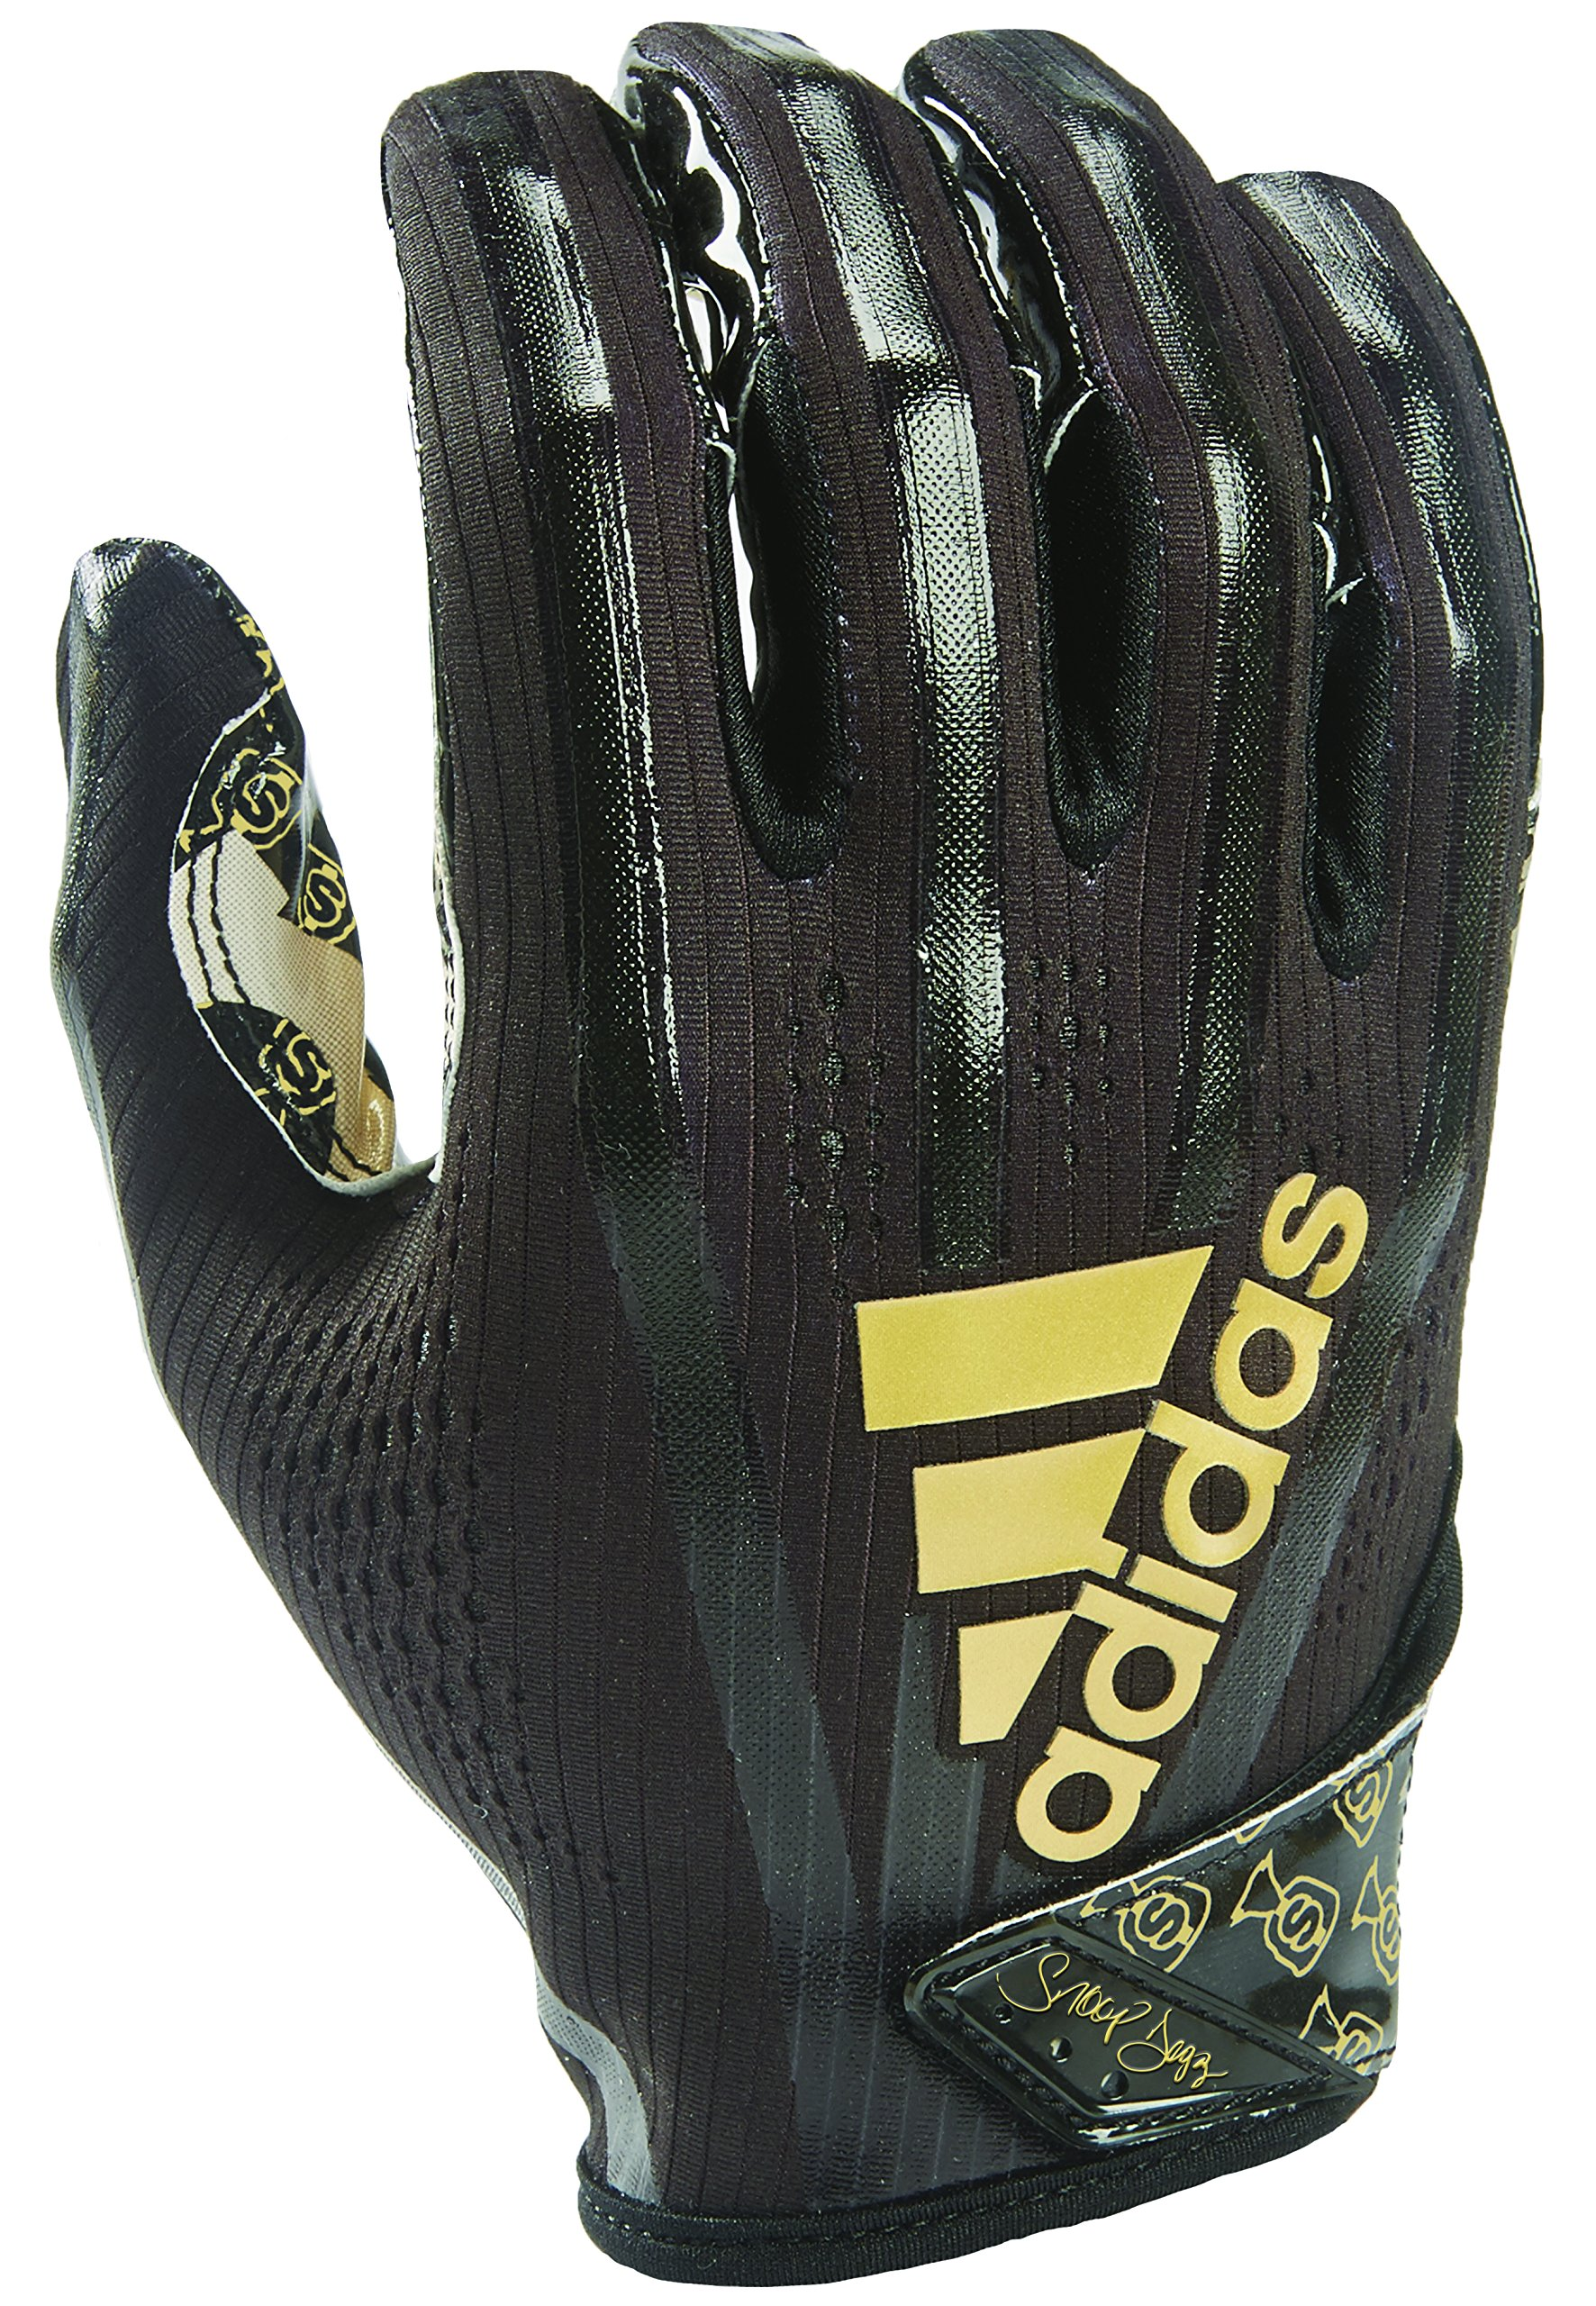 adidas AF1006 Adizero 7.0 Snoop Money Bag Receiver's Gloves, Black, Small